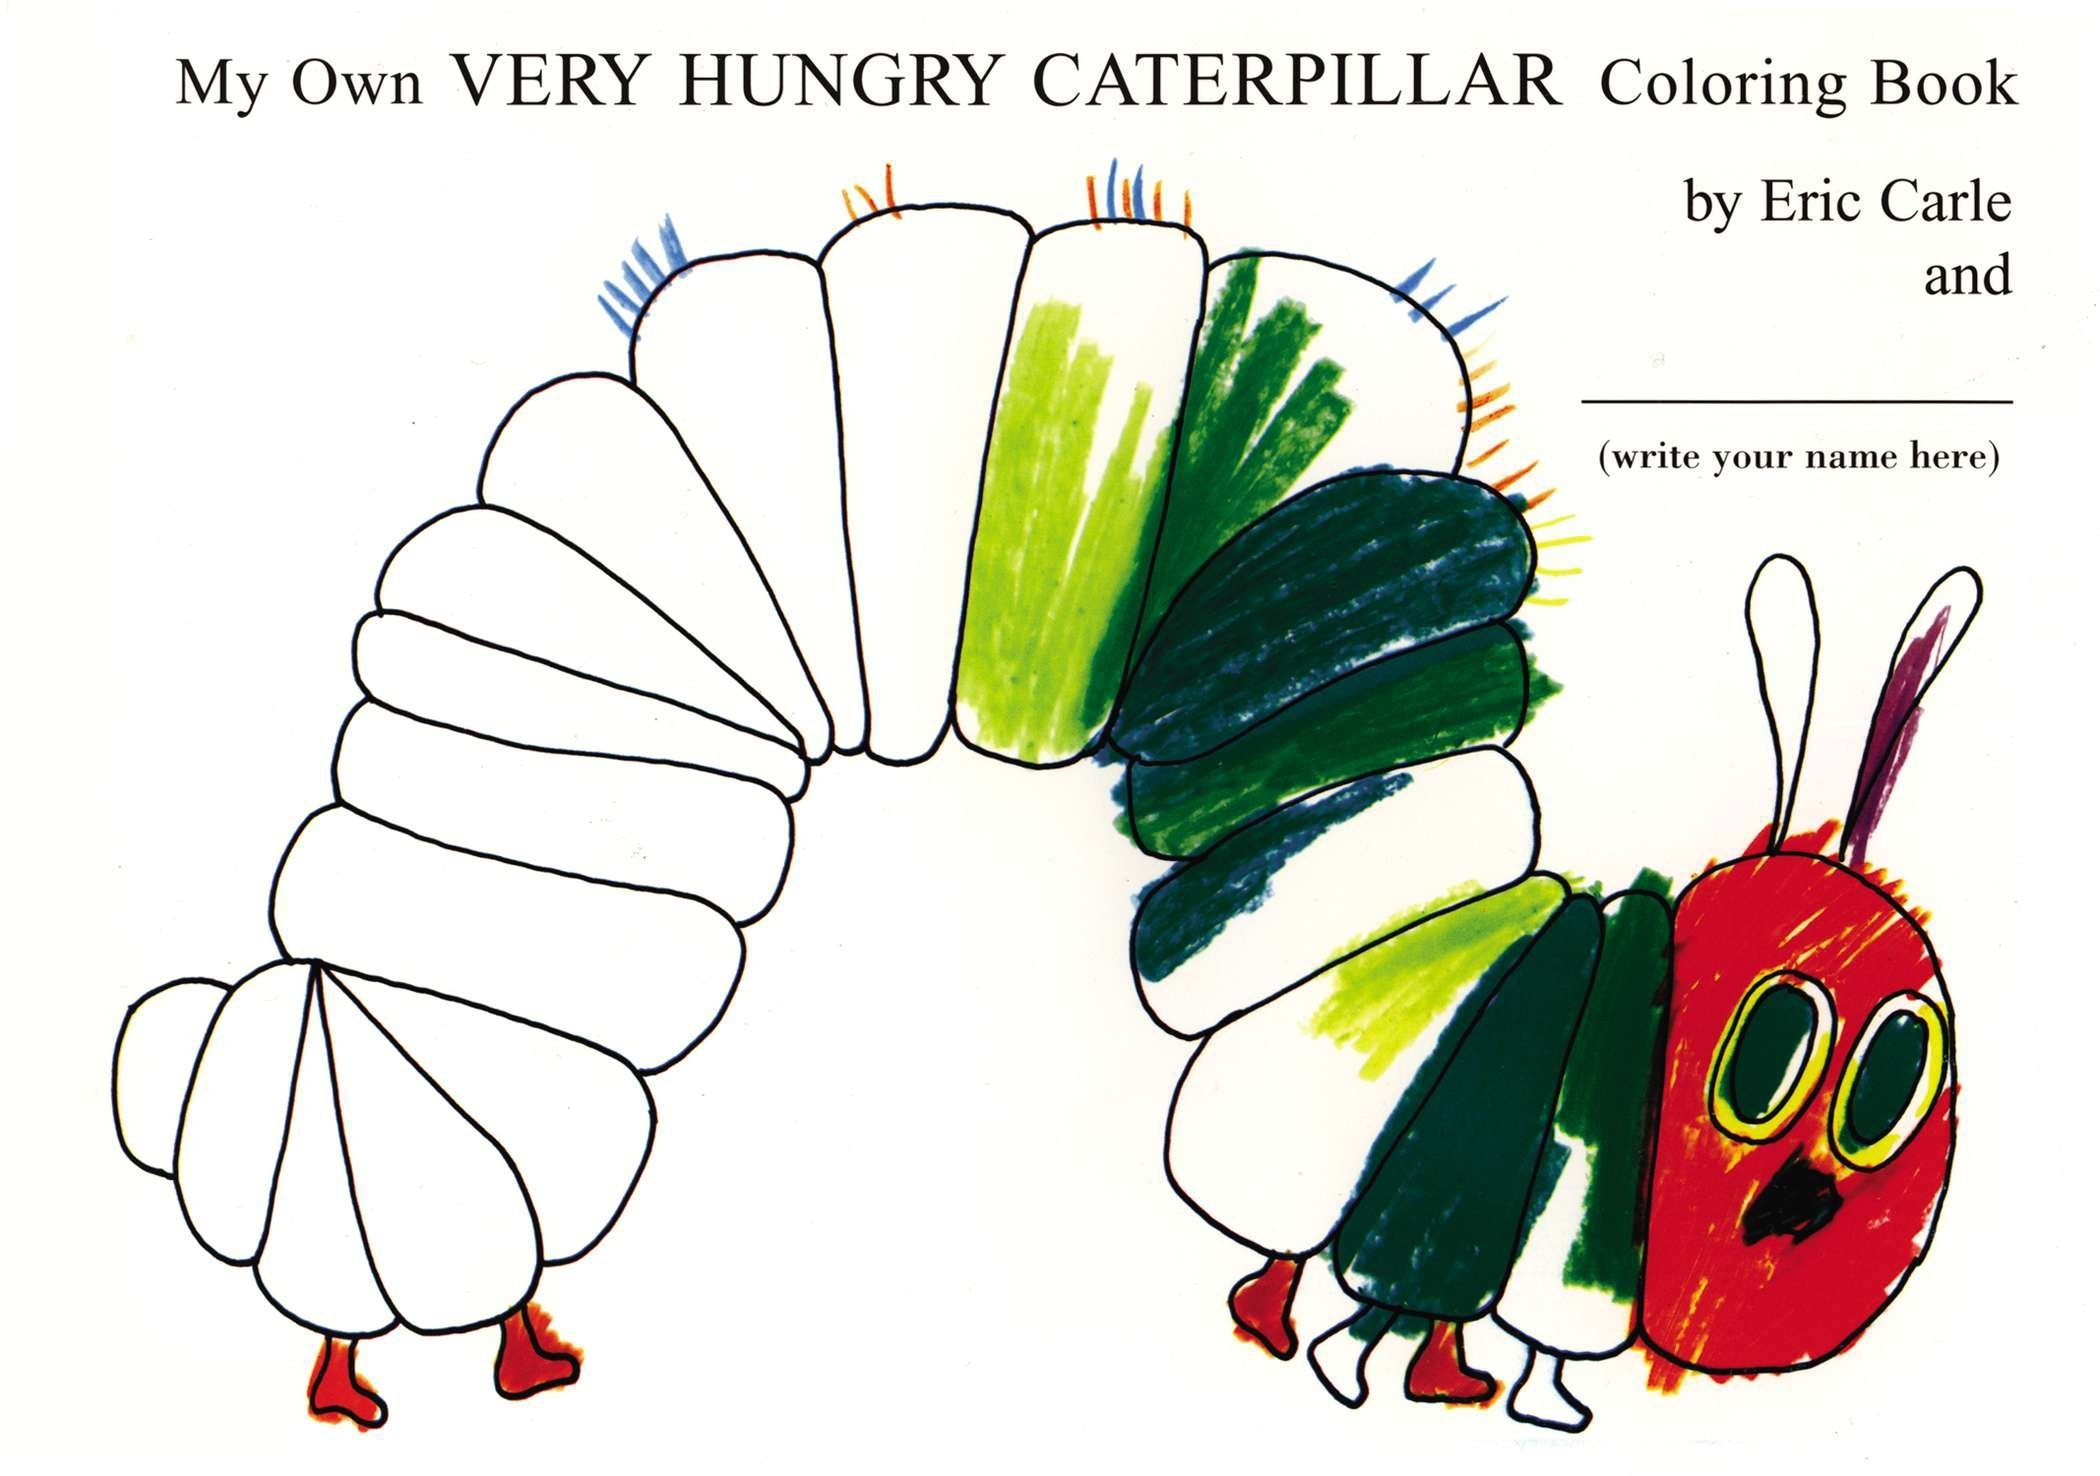 - My Own Very Hungry Caterpillar Coloring Book: Amazon.de: Carle